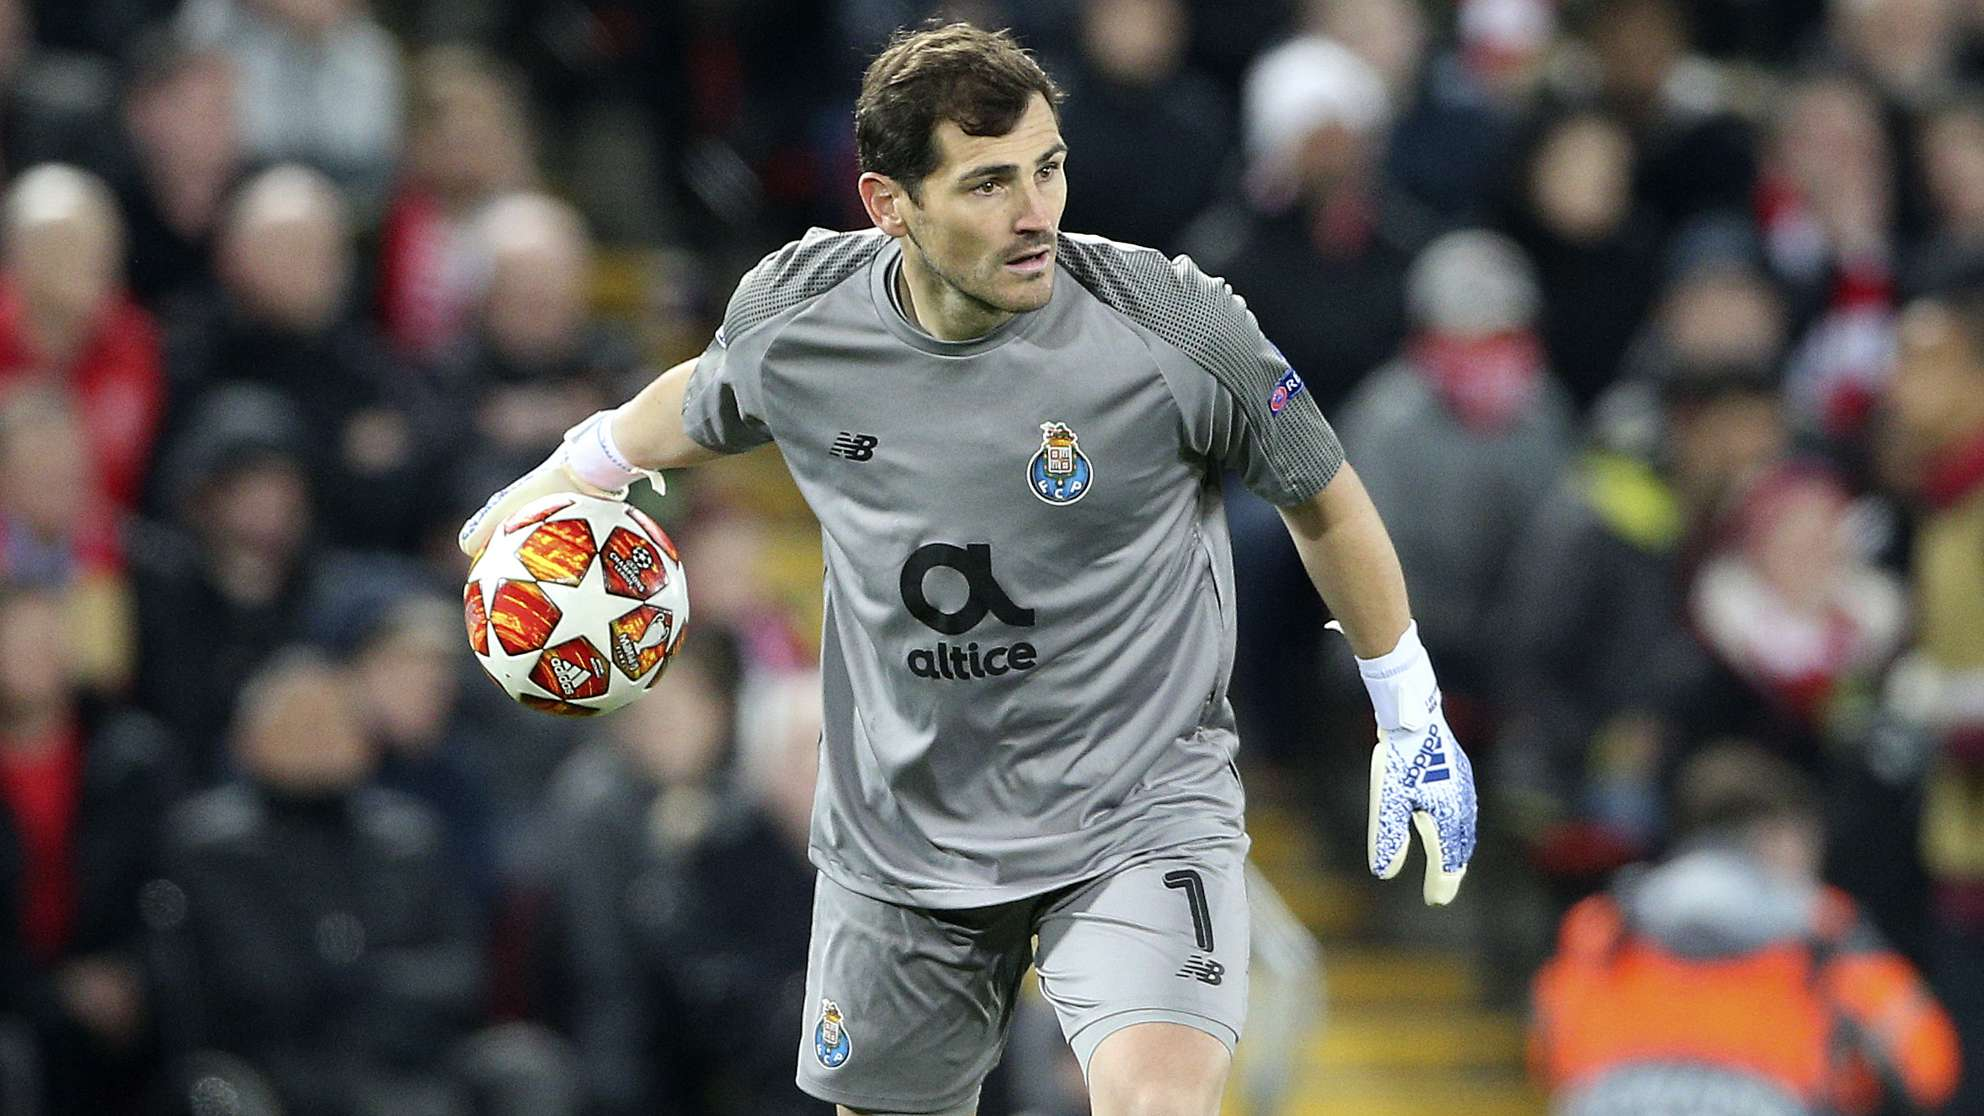 Torwart-Ikone Iker Casillas